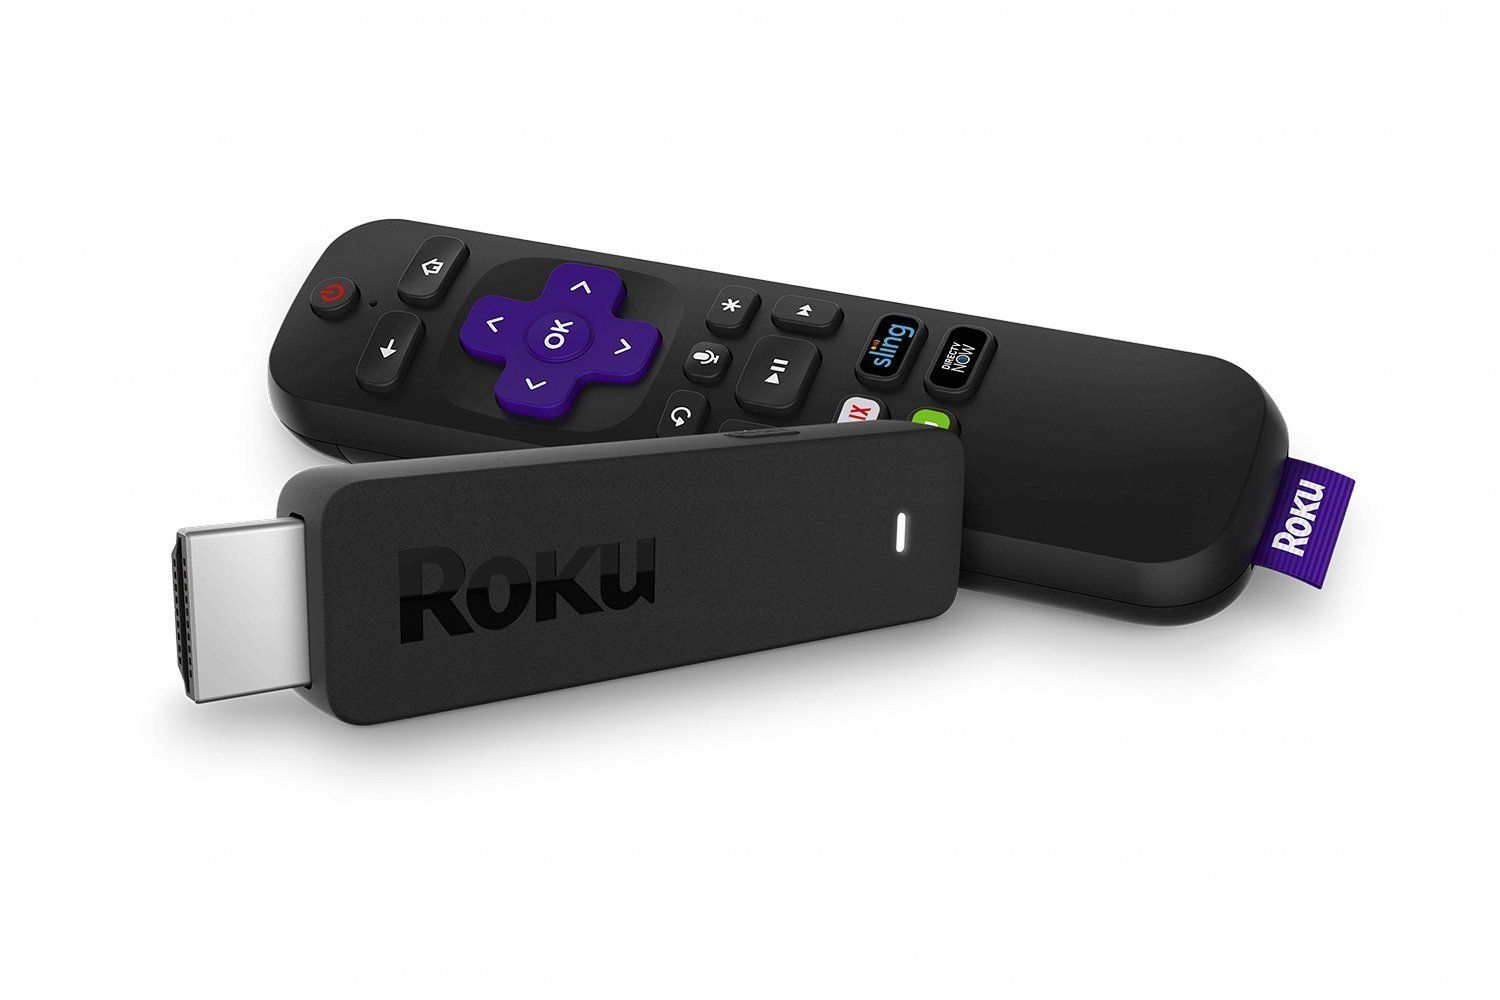 Roku Streaming Stick Portable, powerpacked